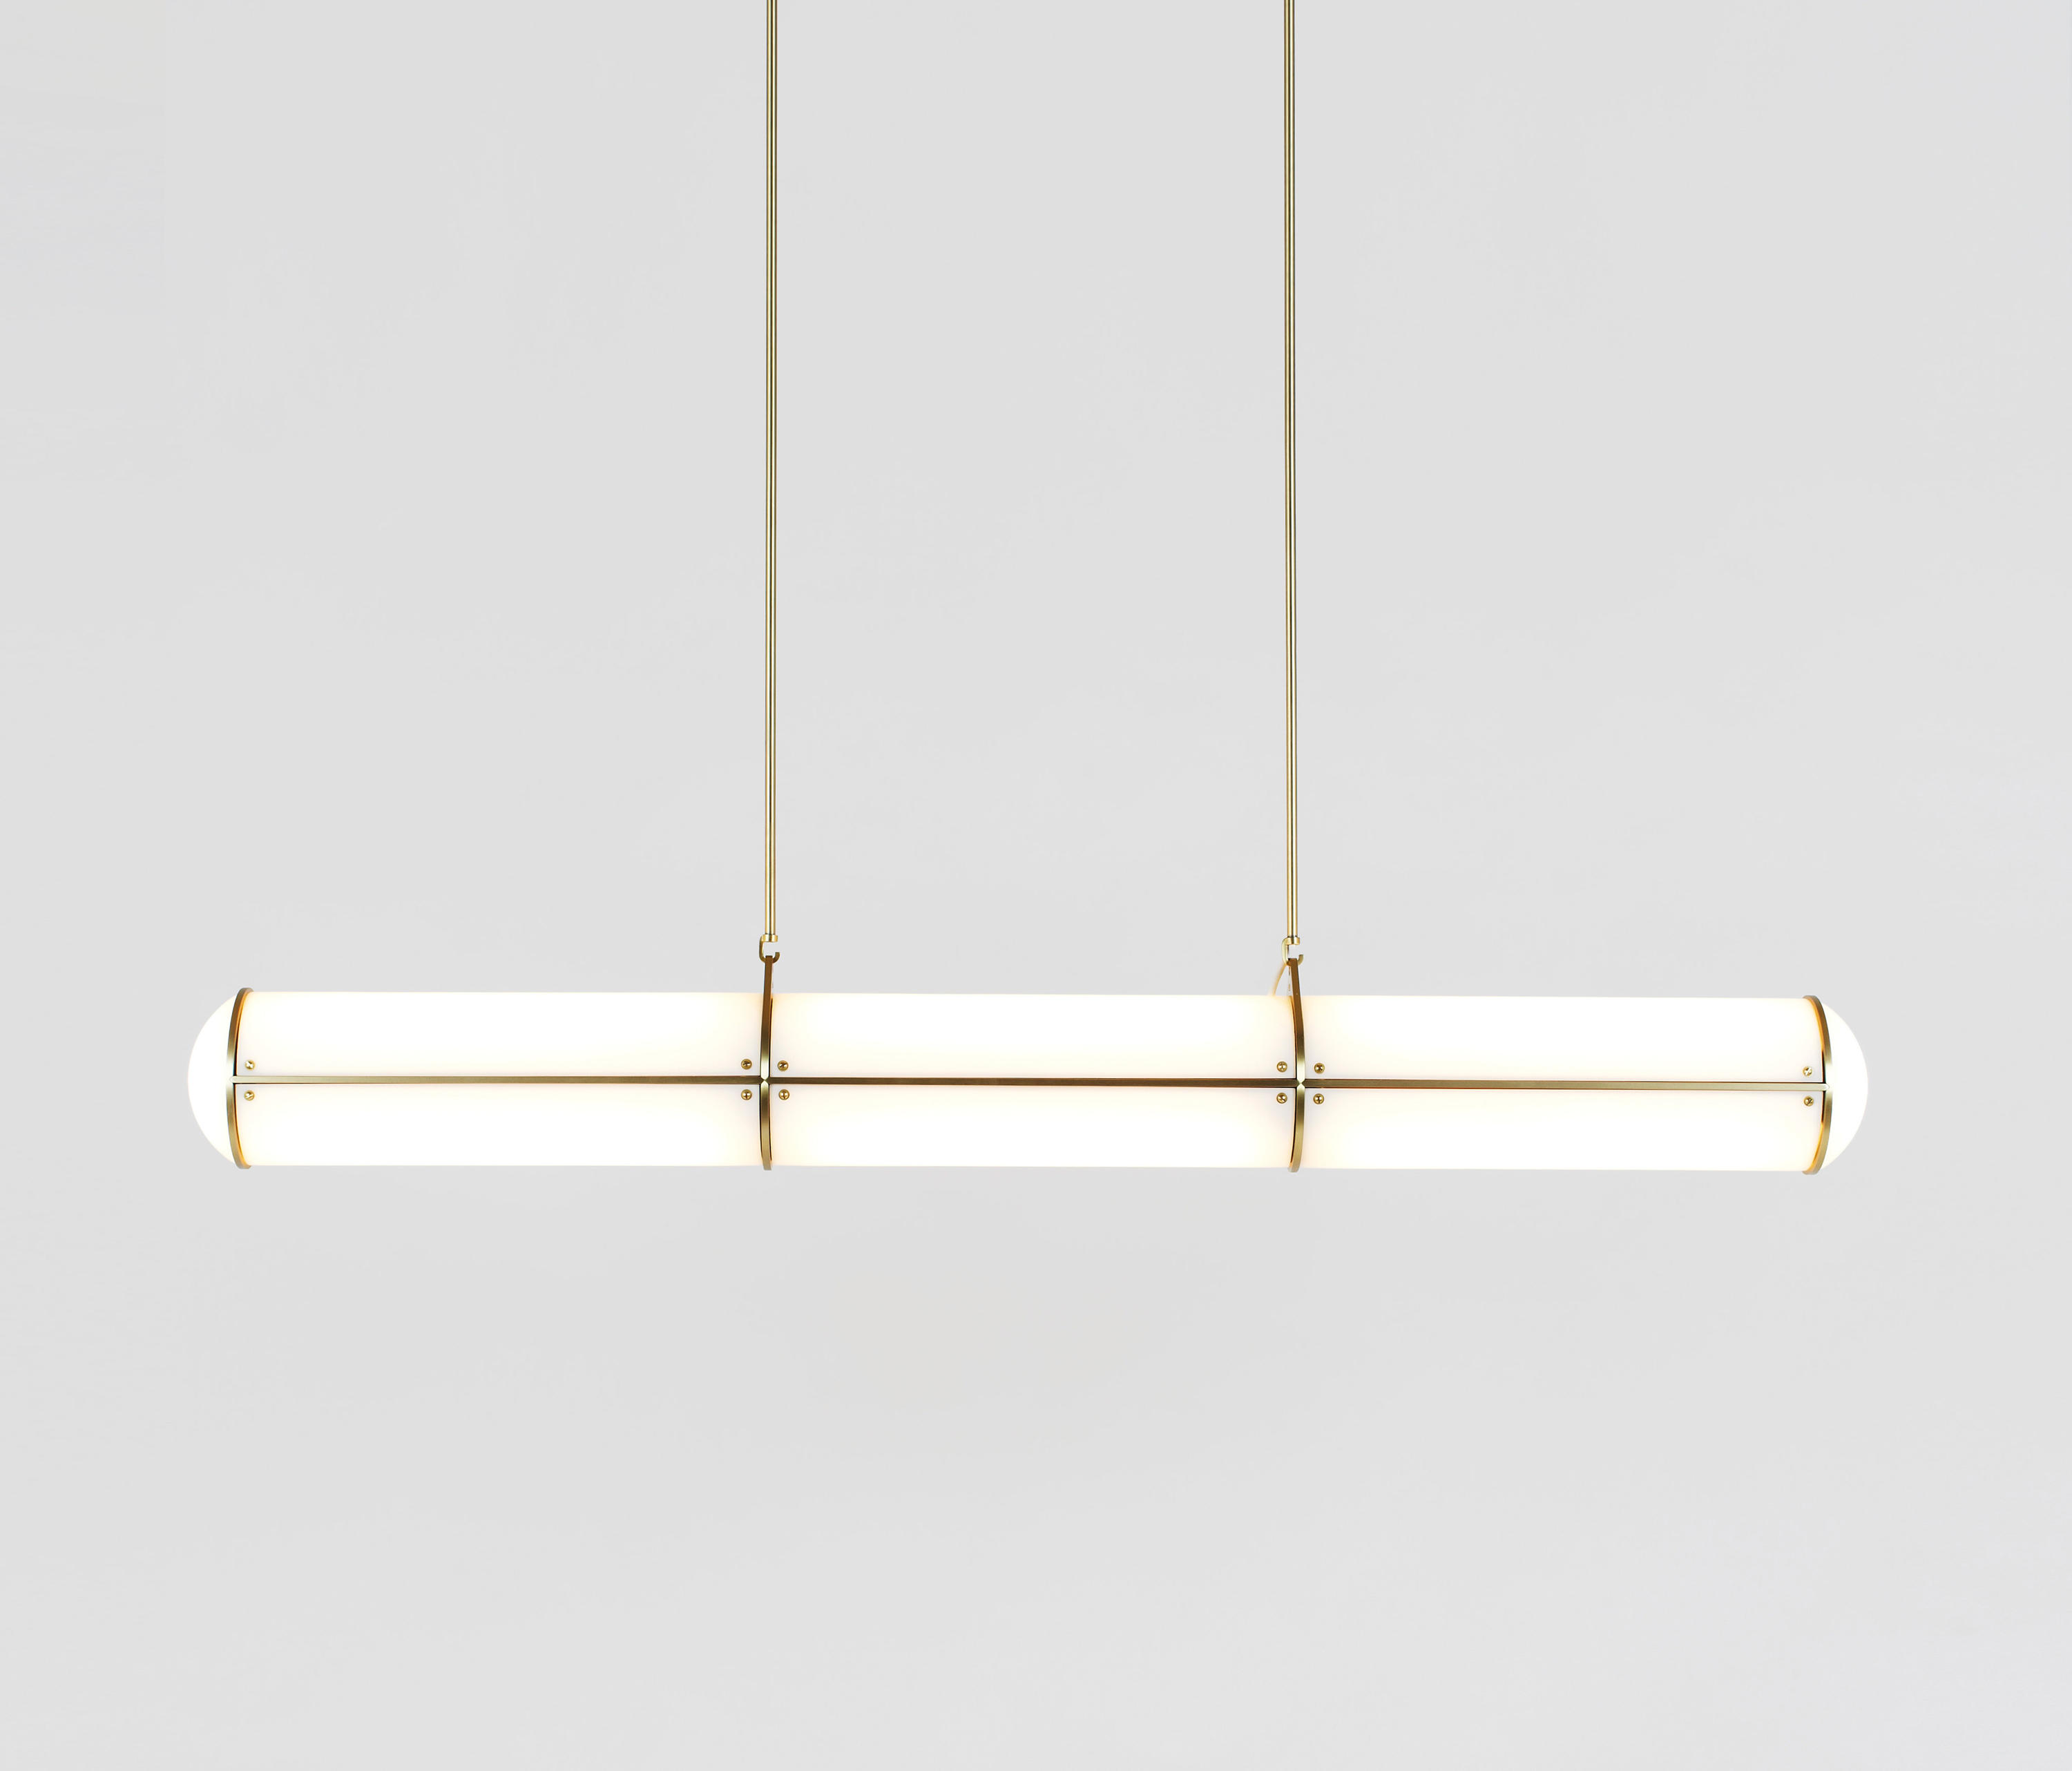 ENDLESS STRAIGHT 3 UNITS BRASS General lighting from Roll Hill